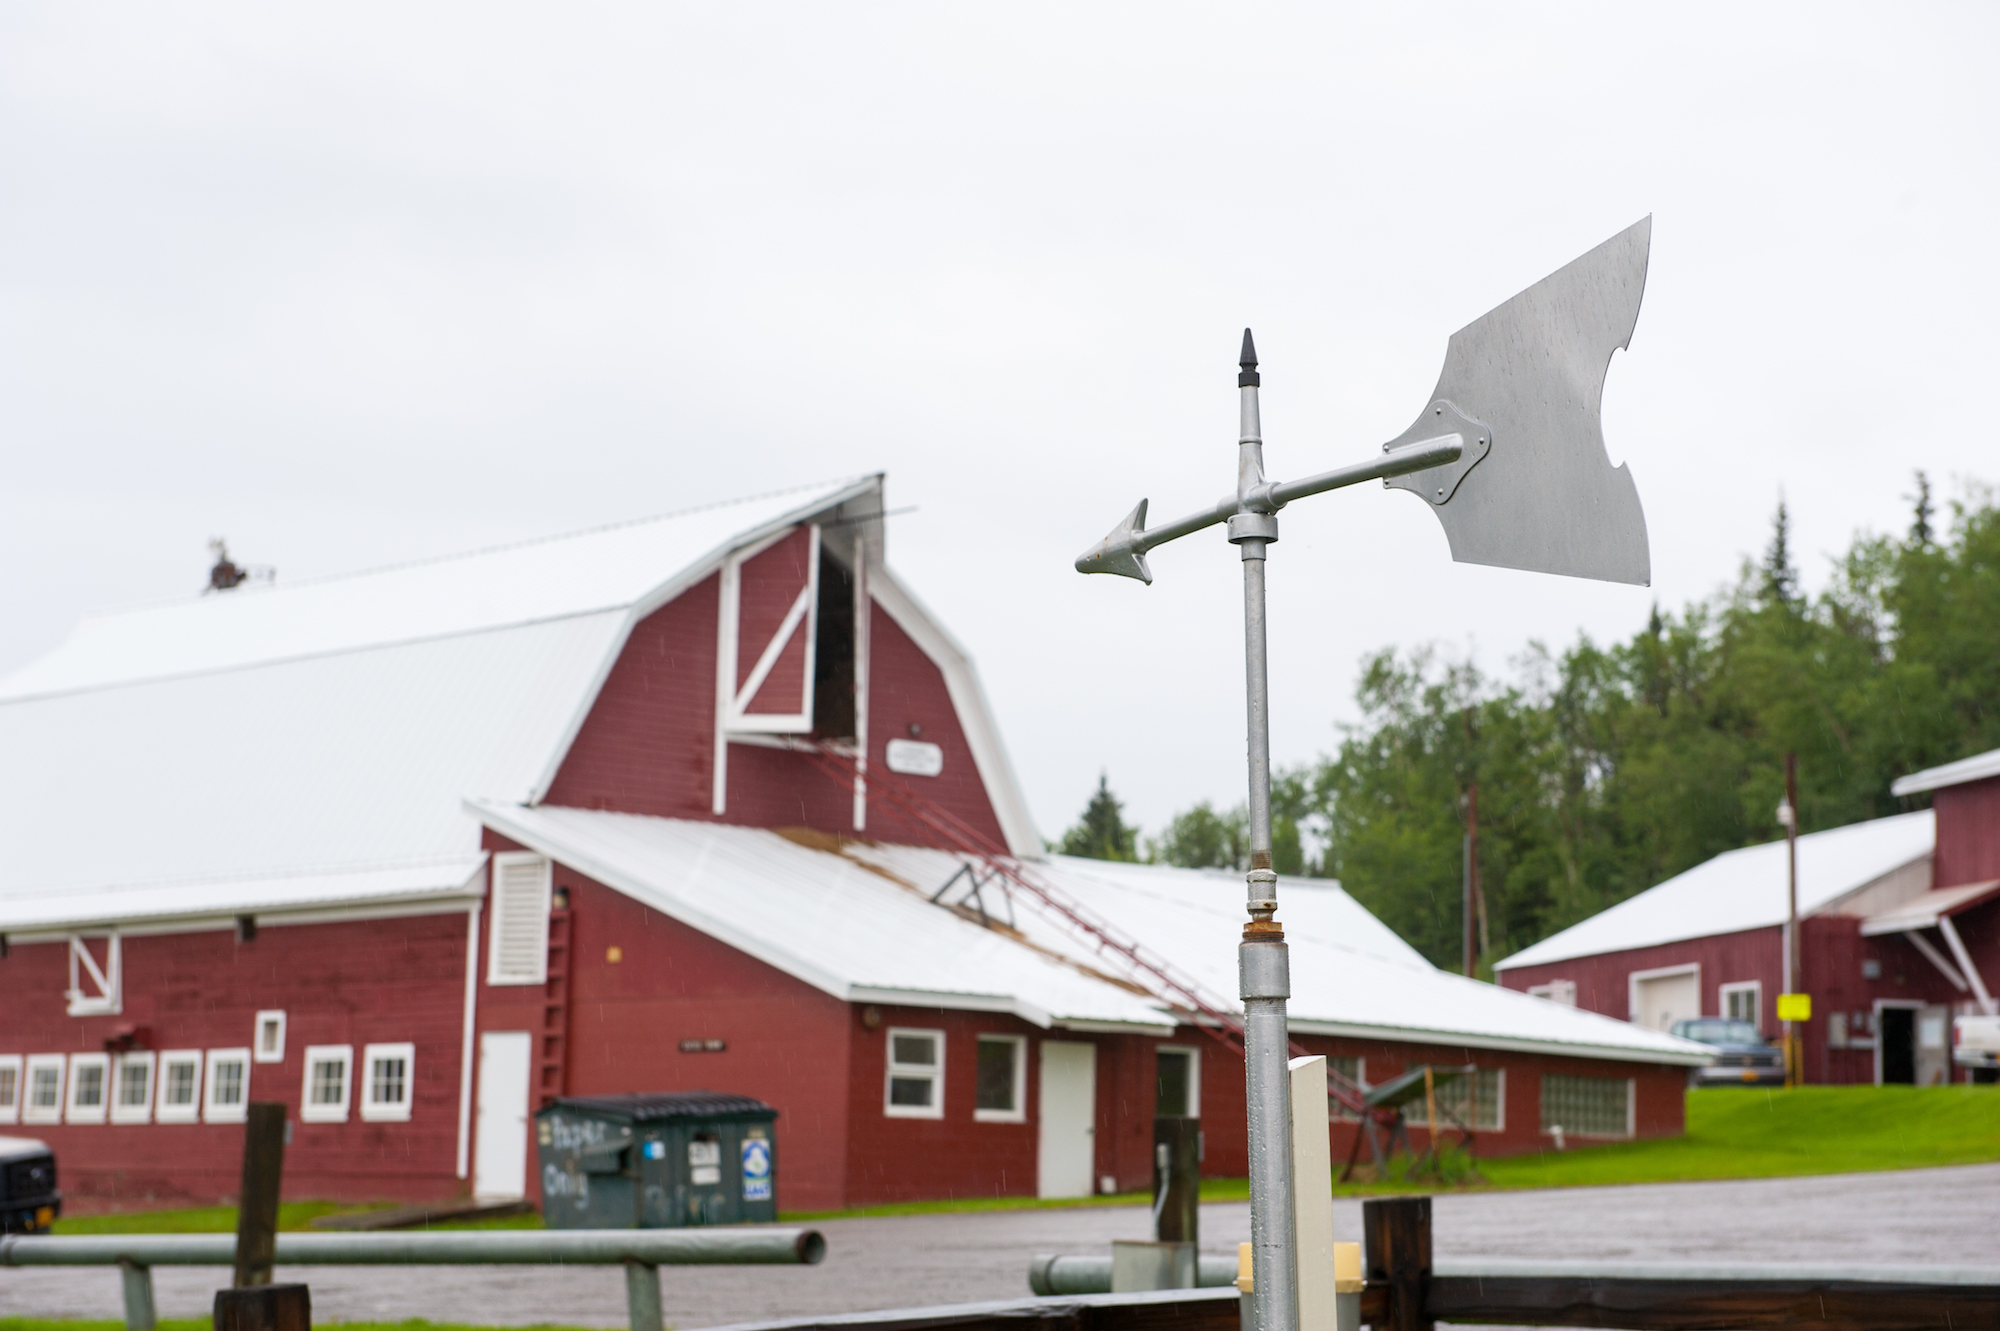 Weather vane at the Fairbanks Experiment Farm